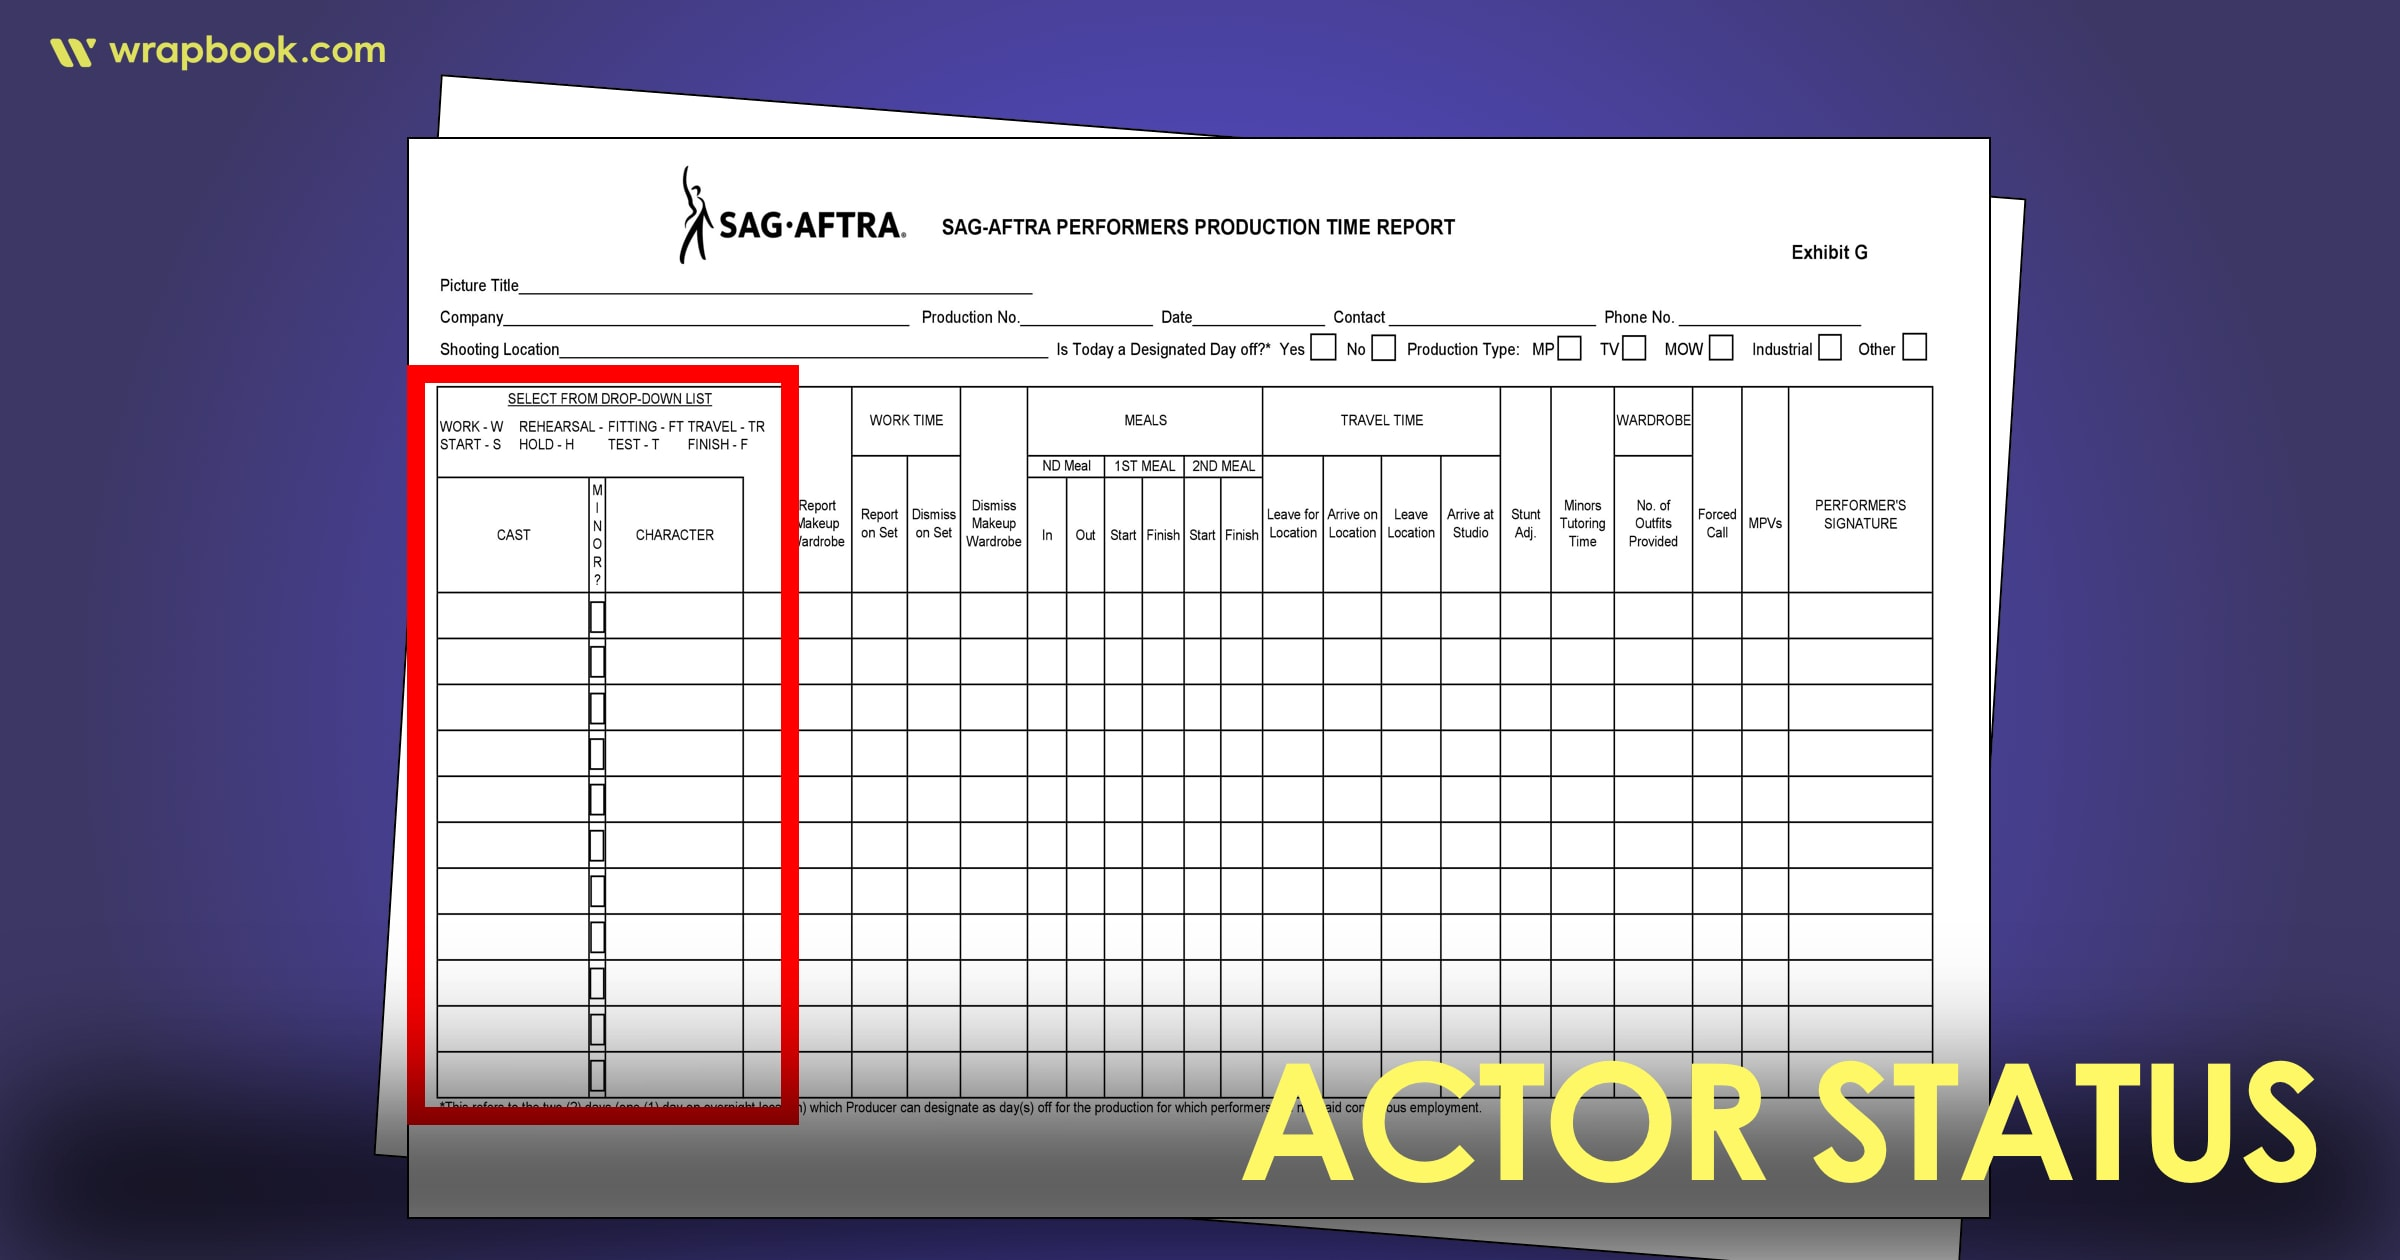 Actor Status - How to Fill Out The SAG Exhibit G Form